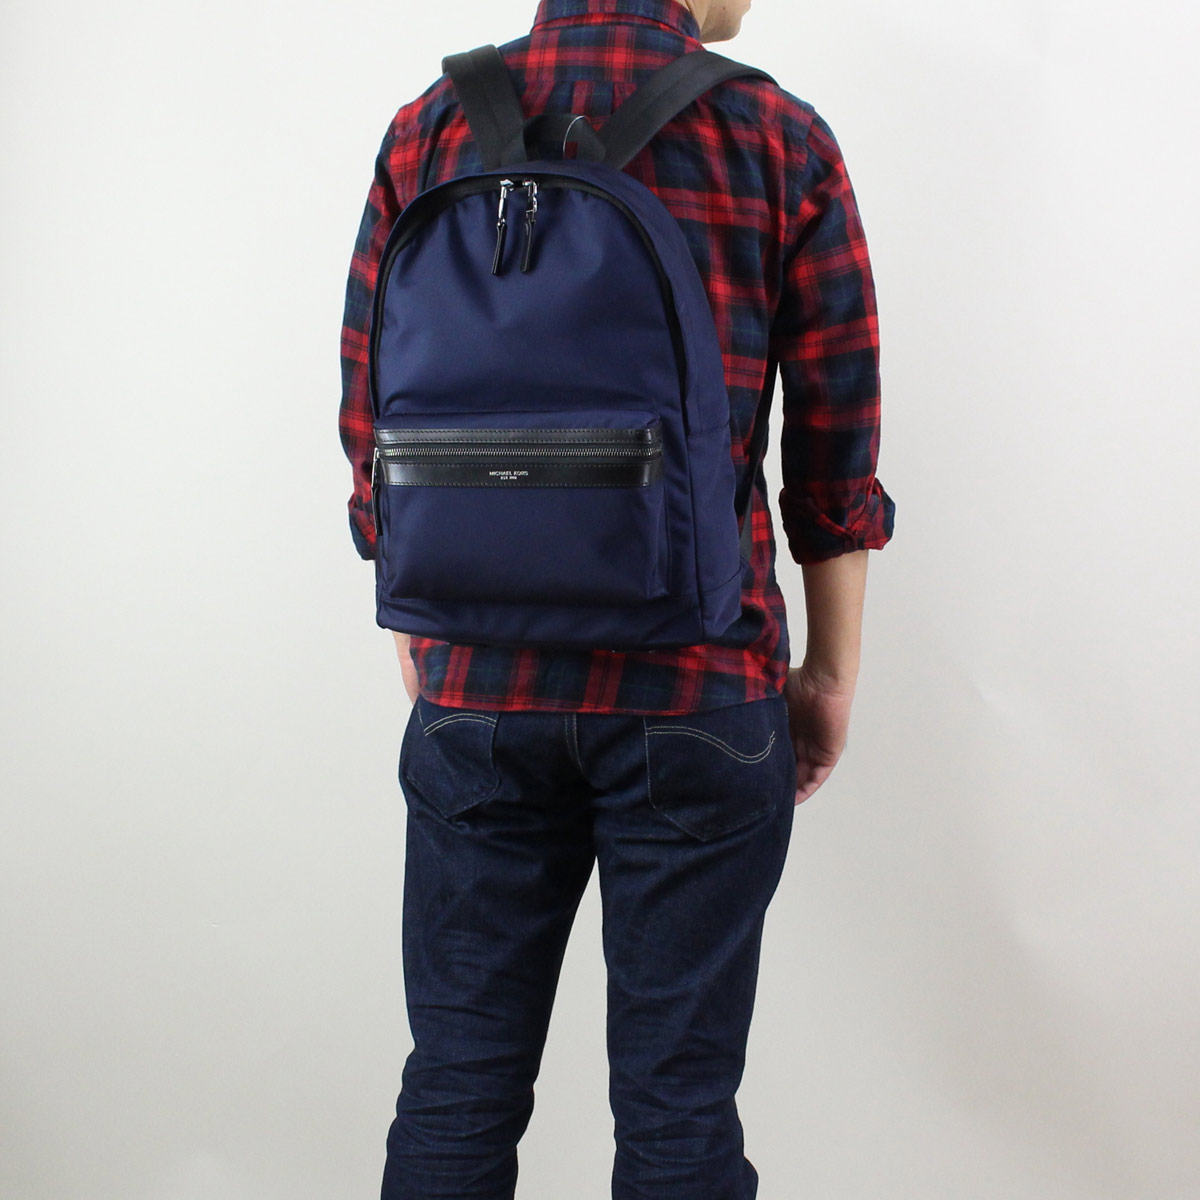 a32f936dfe7c A men's lady's all-around backpack available together! A casual design  using lightweight nylon. The functionality is outstanding with  large-capacity storage ...